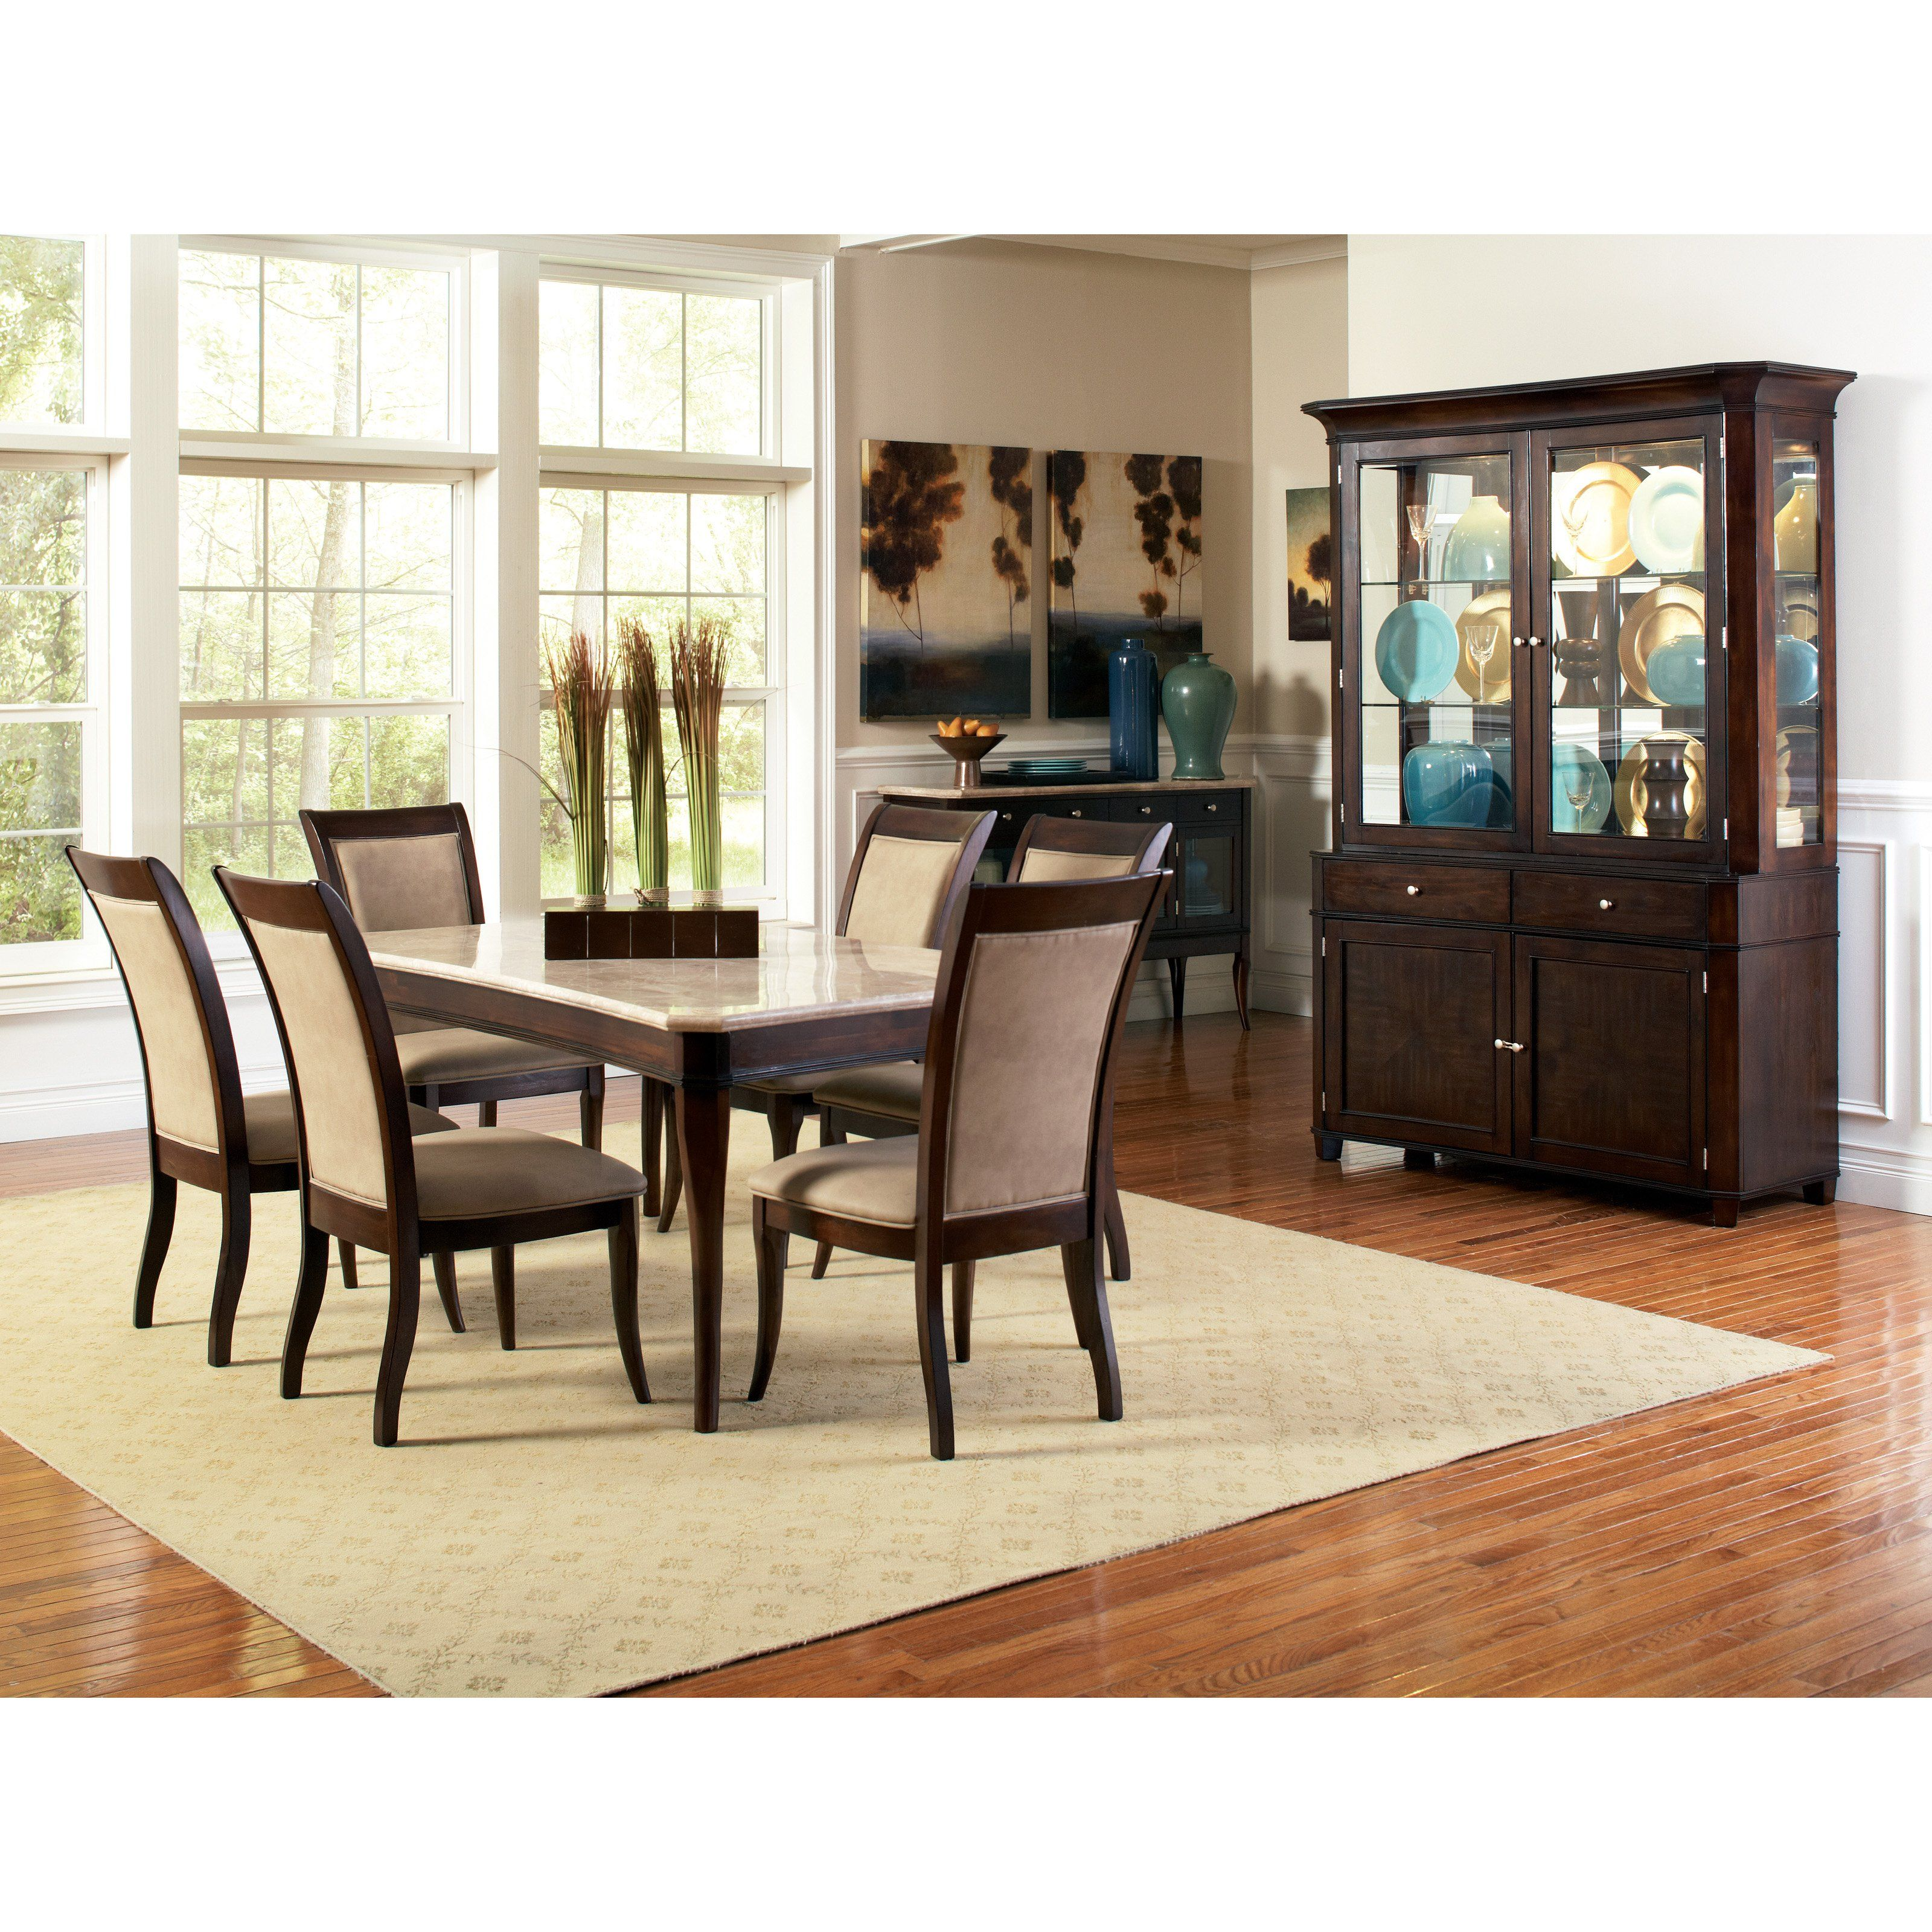 Have To Have Itsteve Silver 7 Piece Marseille Marble Top Dining Amazing Dark Cherry Dining Room Set Review